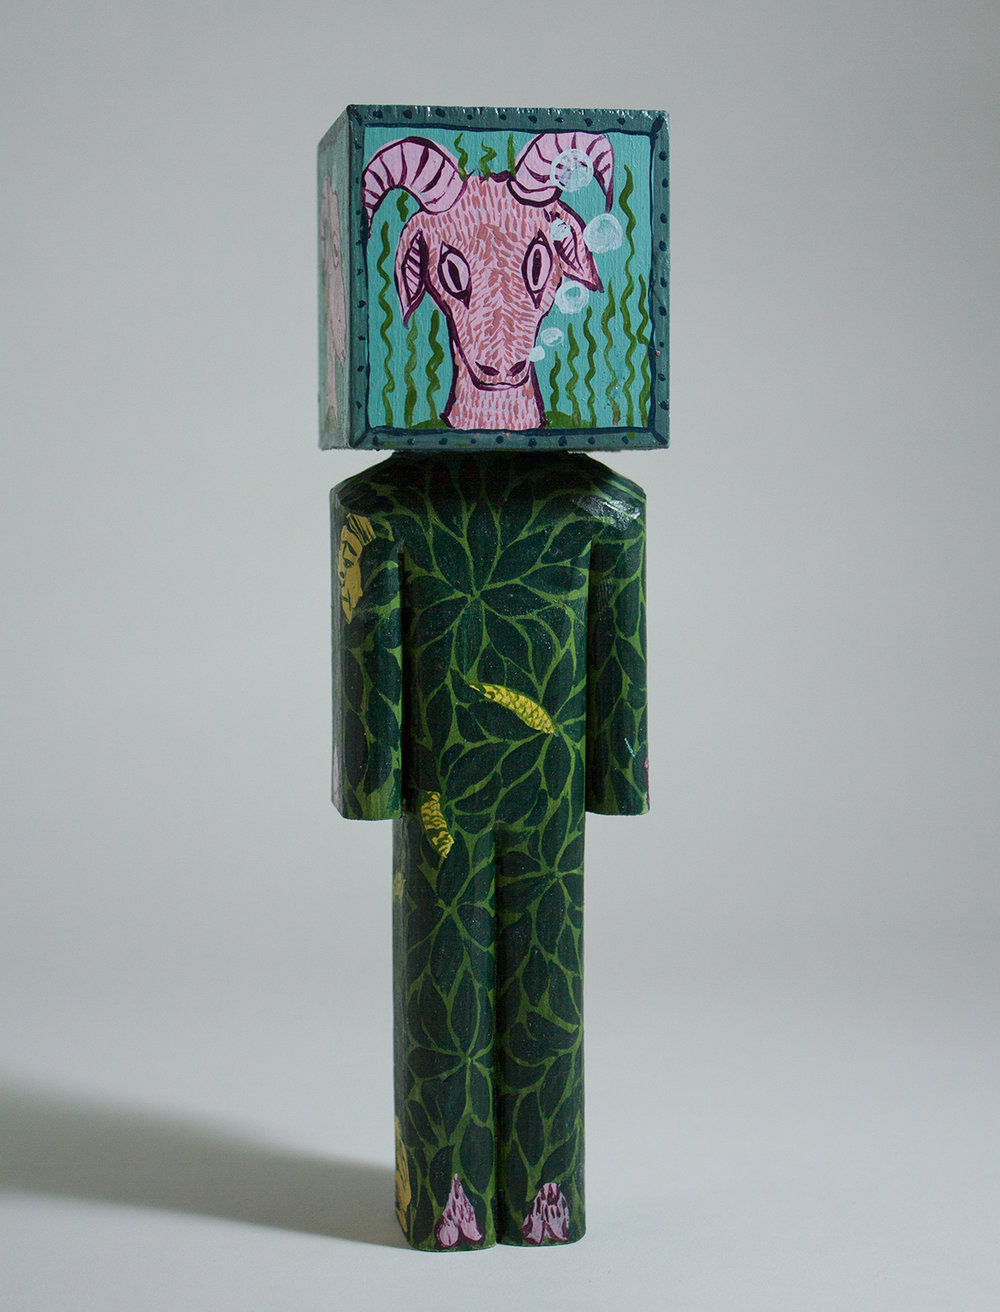 """Bleat"" Collaboration with Andrew Catanese. basswood and acrylic. 7.5 x 2 x 2 inches. CSK 015G"